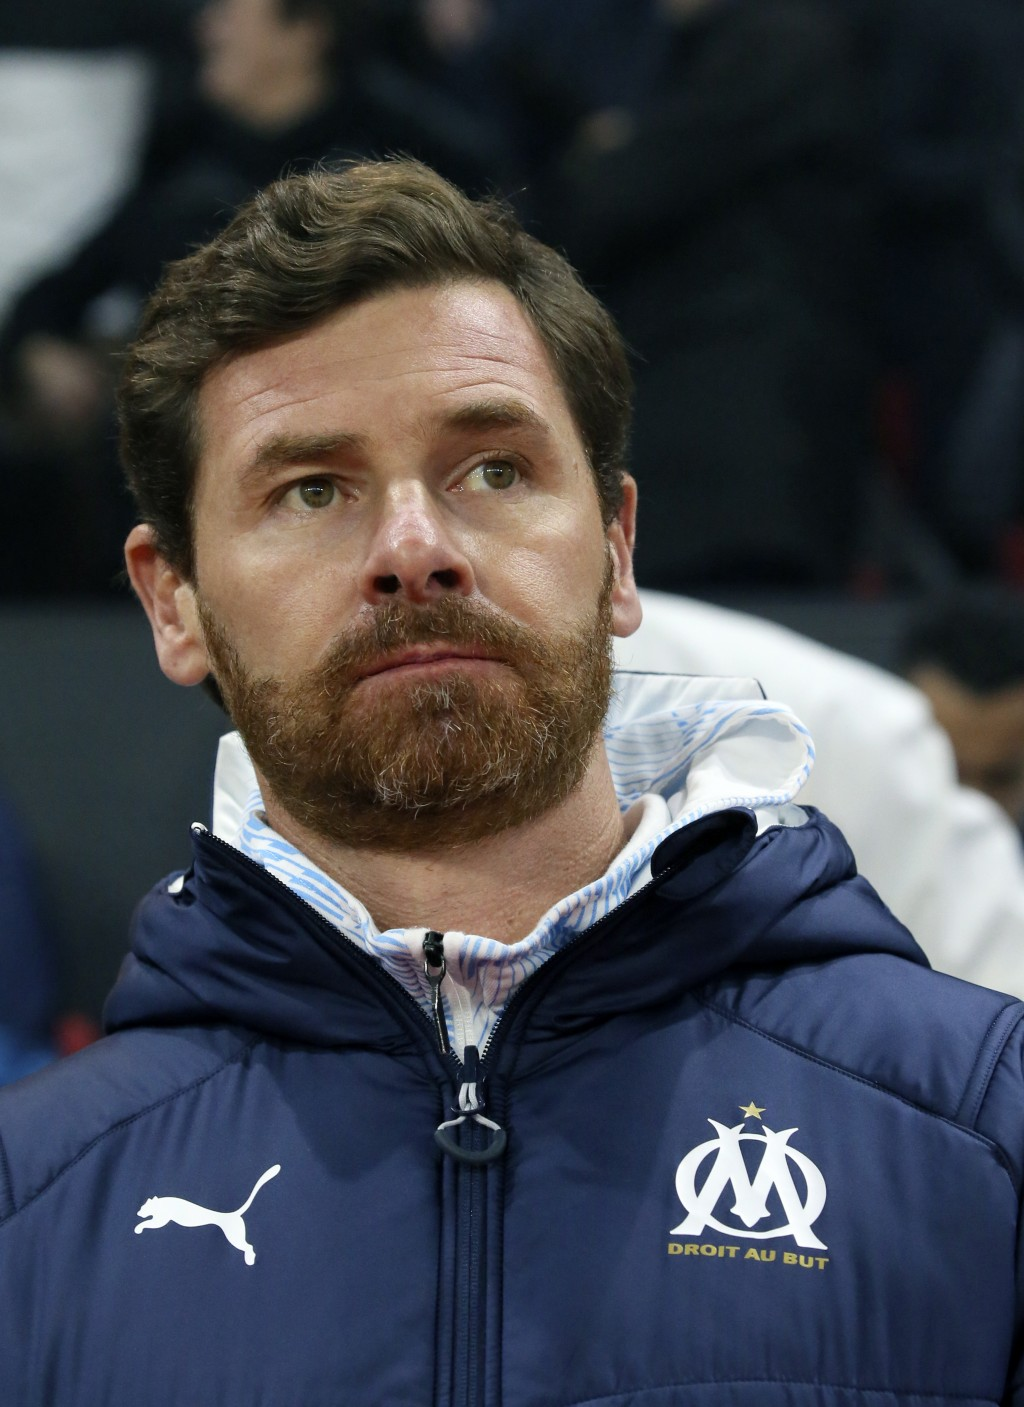 Marseille's head coach Andre Villas-Boas looks out before the League One soccer match between Rennes and Marseille, at the Roazhon Park stadium in Ren...